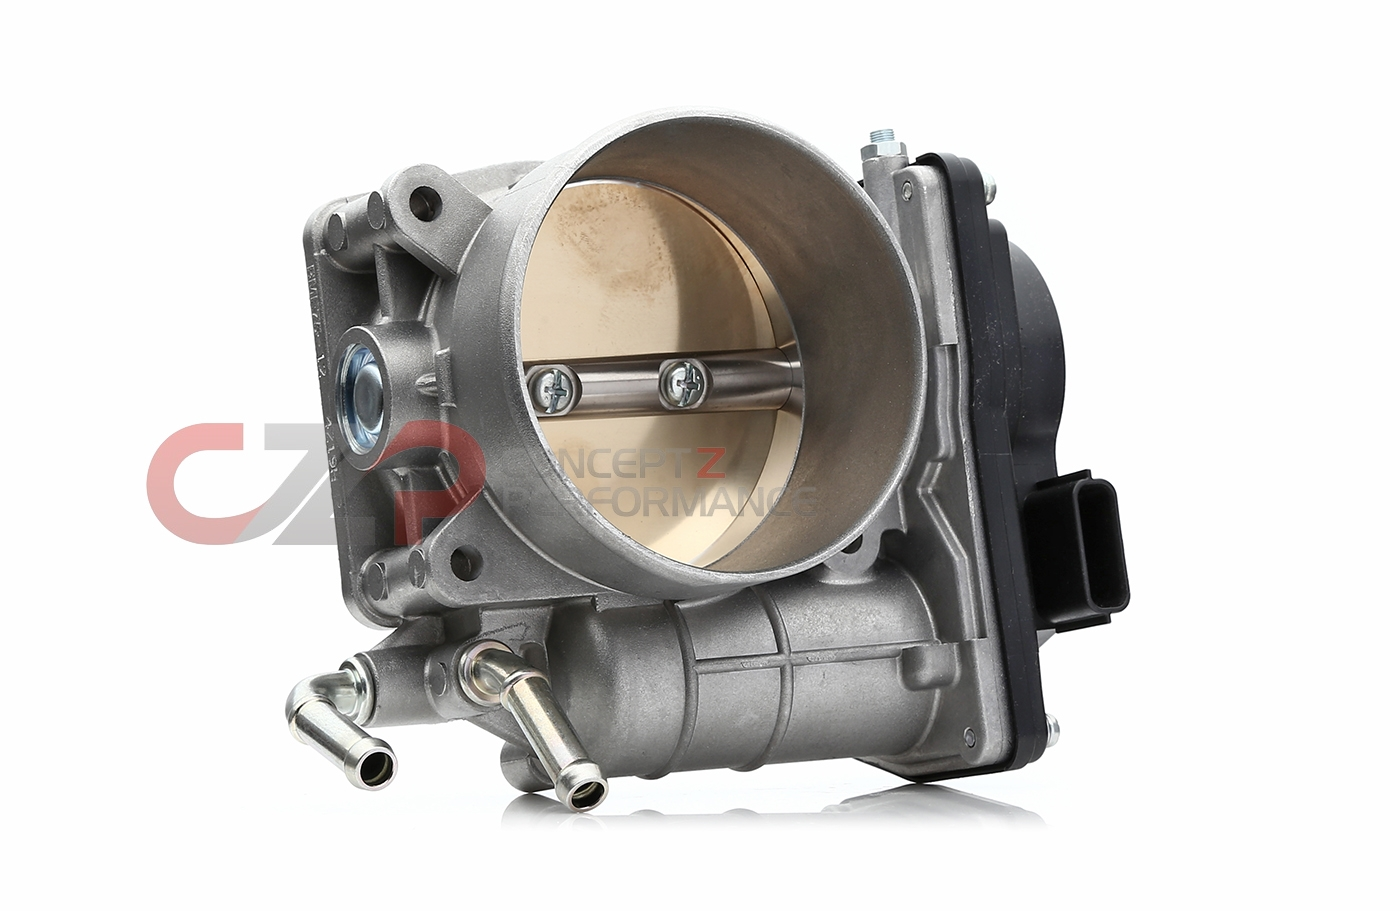 Hitachi 75mm Electronic Drive-By-Wire Throttle Body - Universal